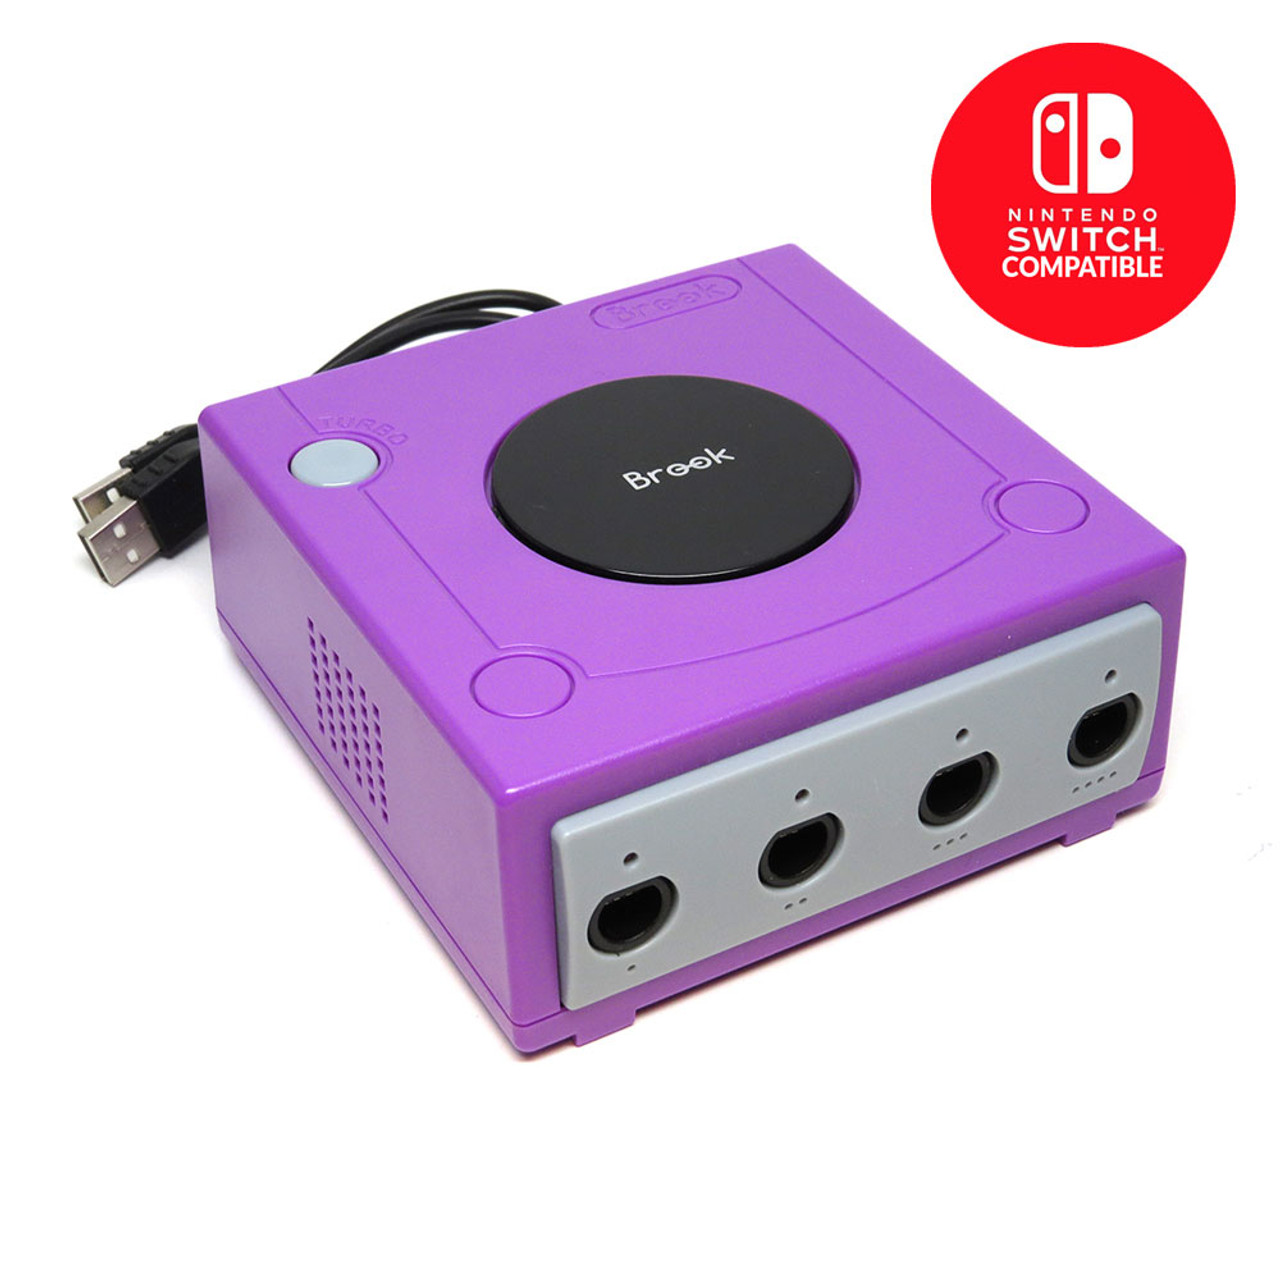 Gamecube Adapter For Wii U Pc Android Switch